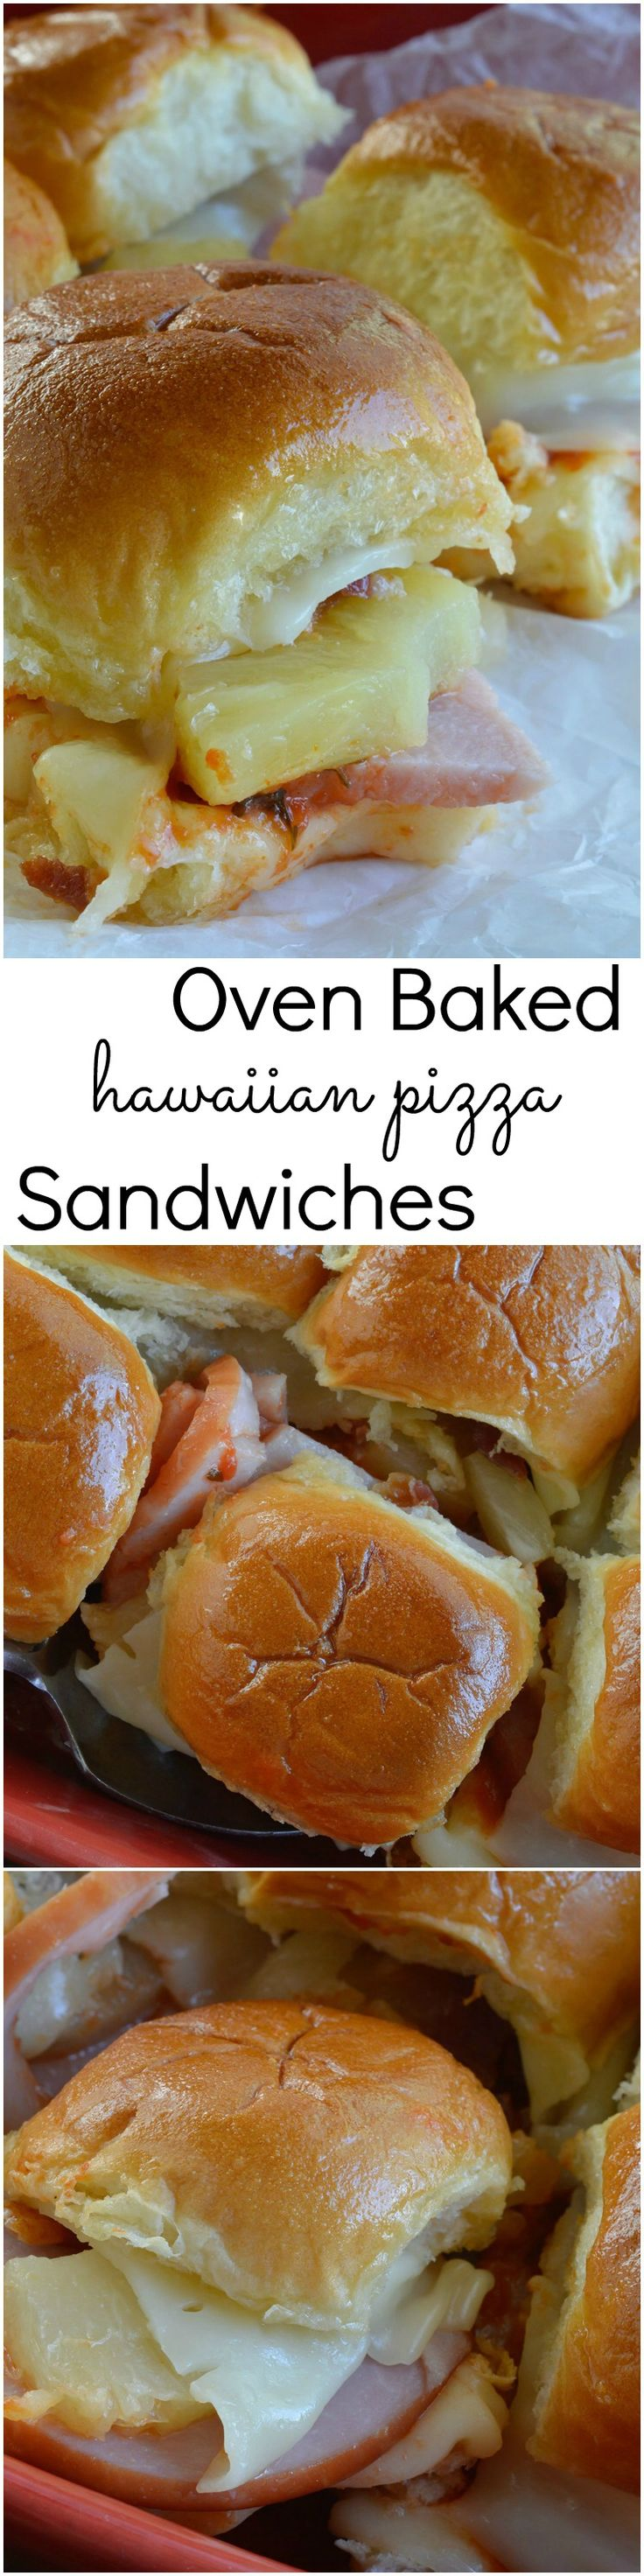 Oven Baked Hawaiian Pizza Sandwiches! Melty Cheese, Canadian Bacon, Pineapple, Bacon Crumbles and Pizza Sauce Baked on Soft Bread Rolls!